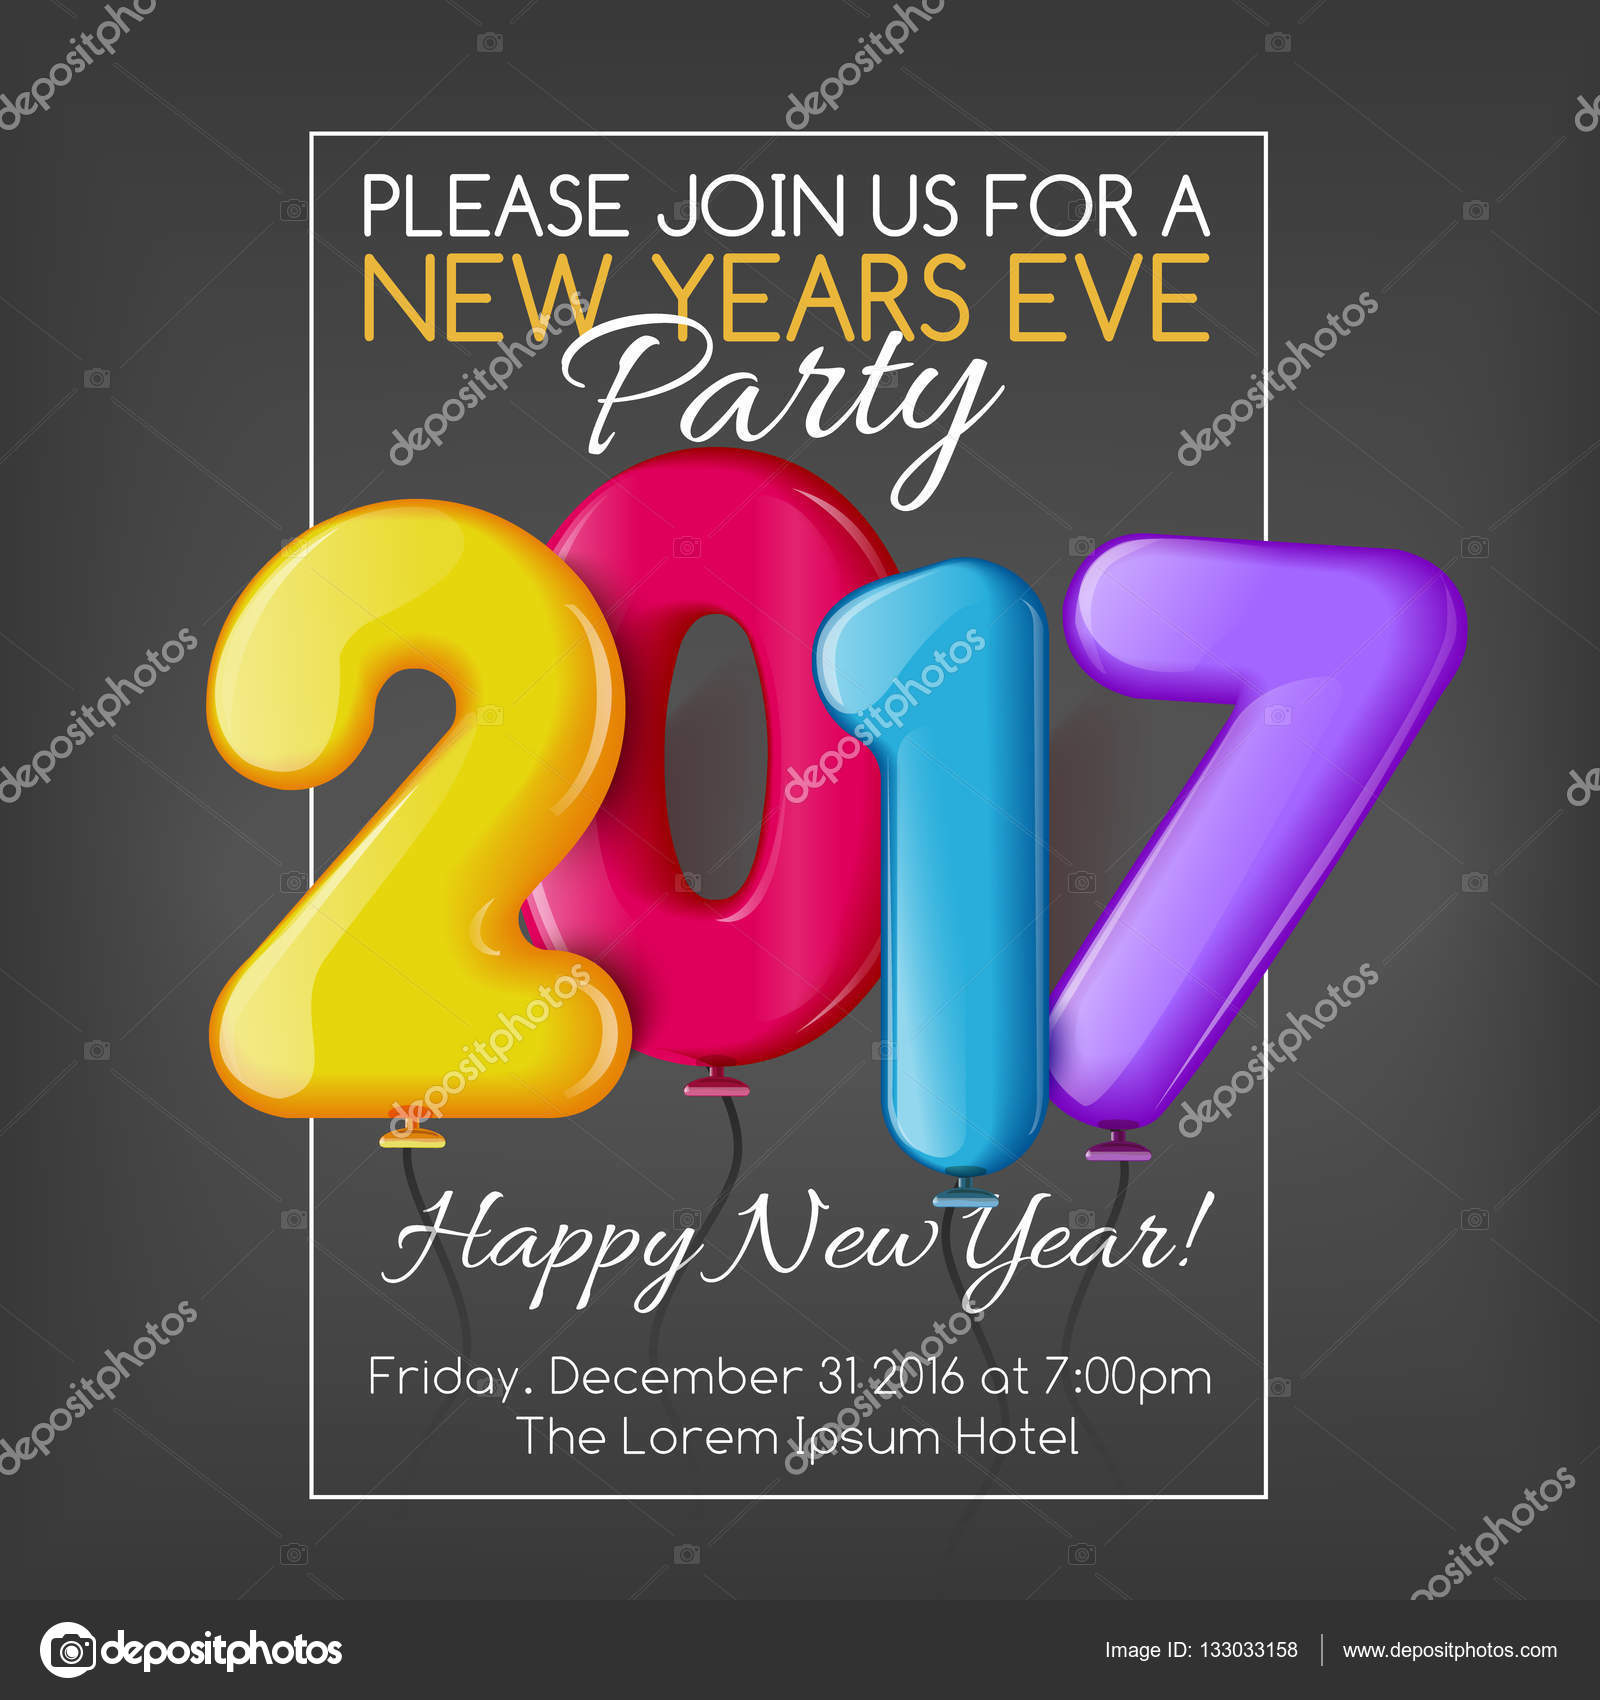 merry christmas and happy new year 2017 party invitation template